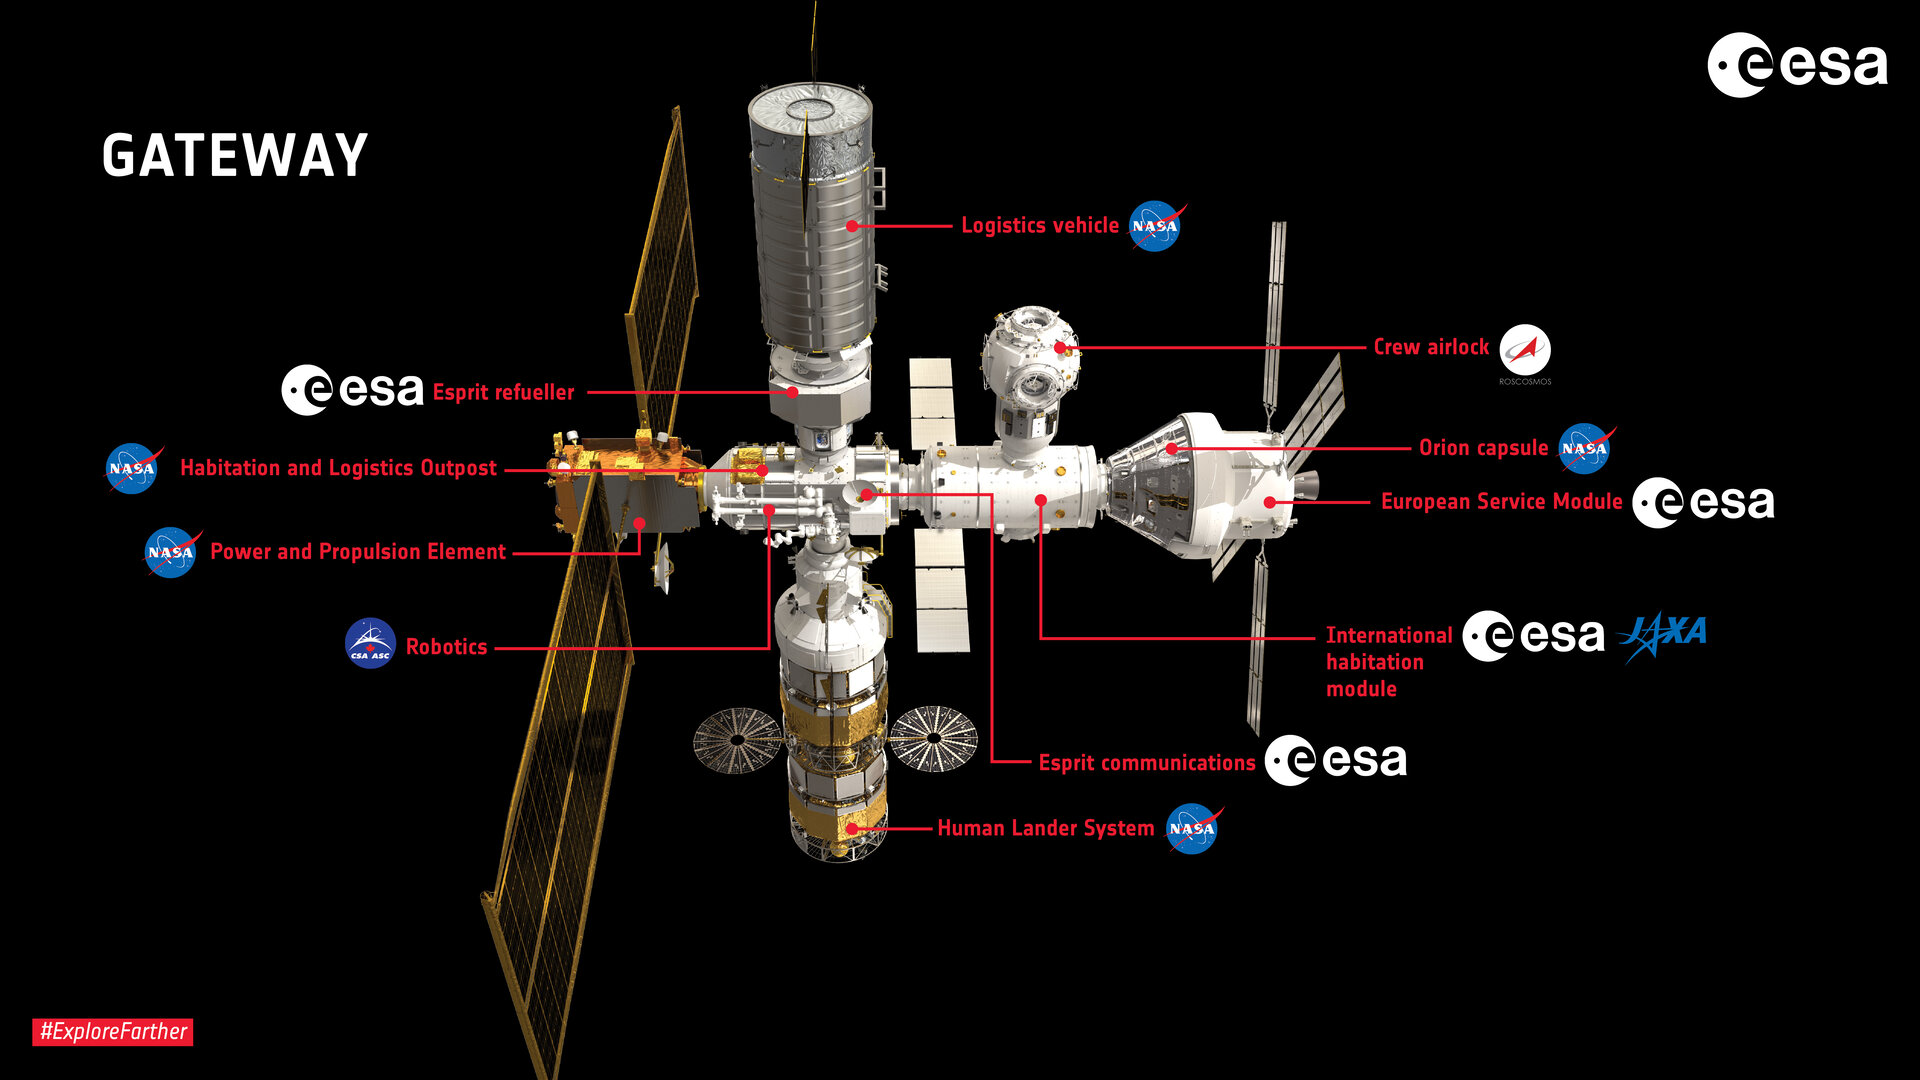 NASA and JAXA agree on Lunar Gateway life support systems